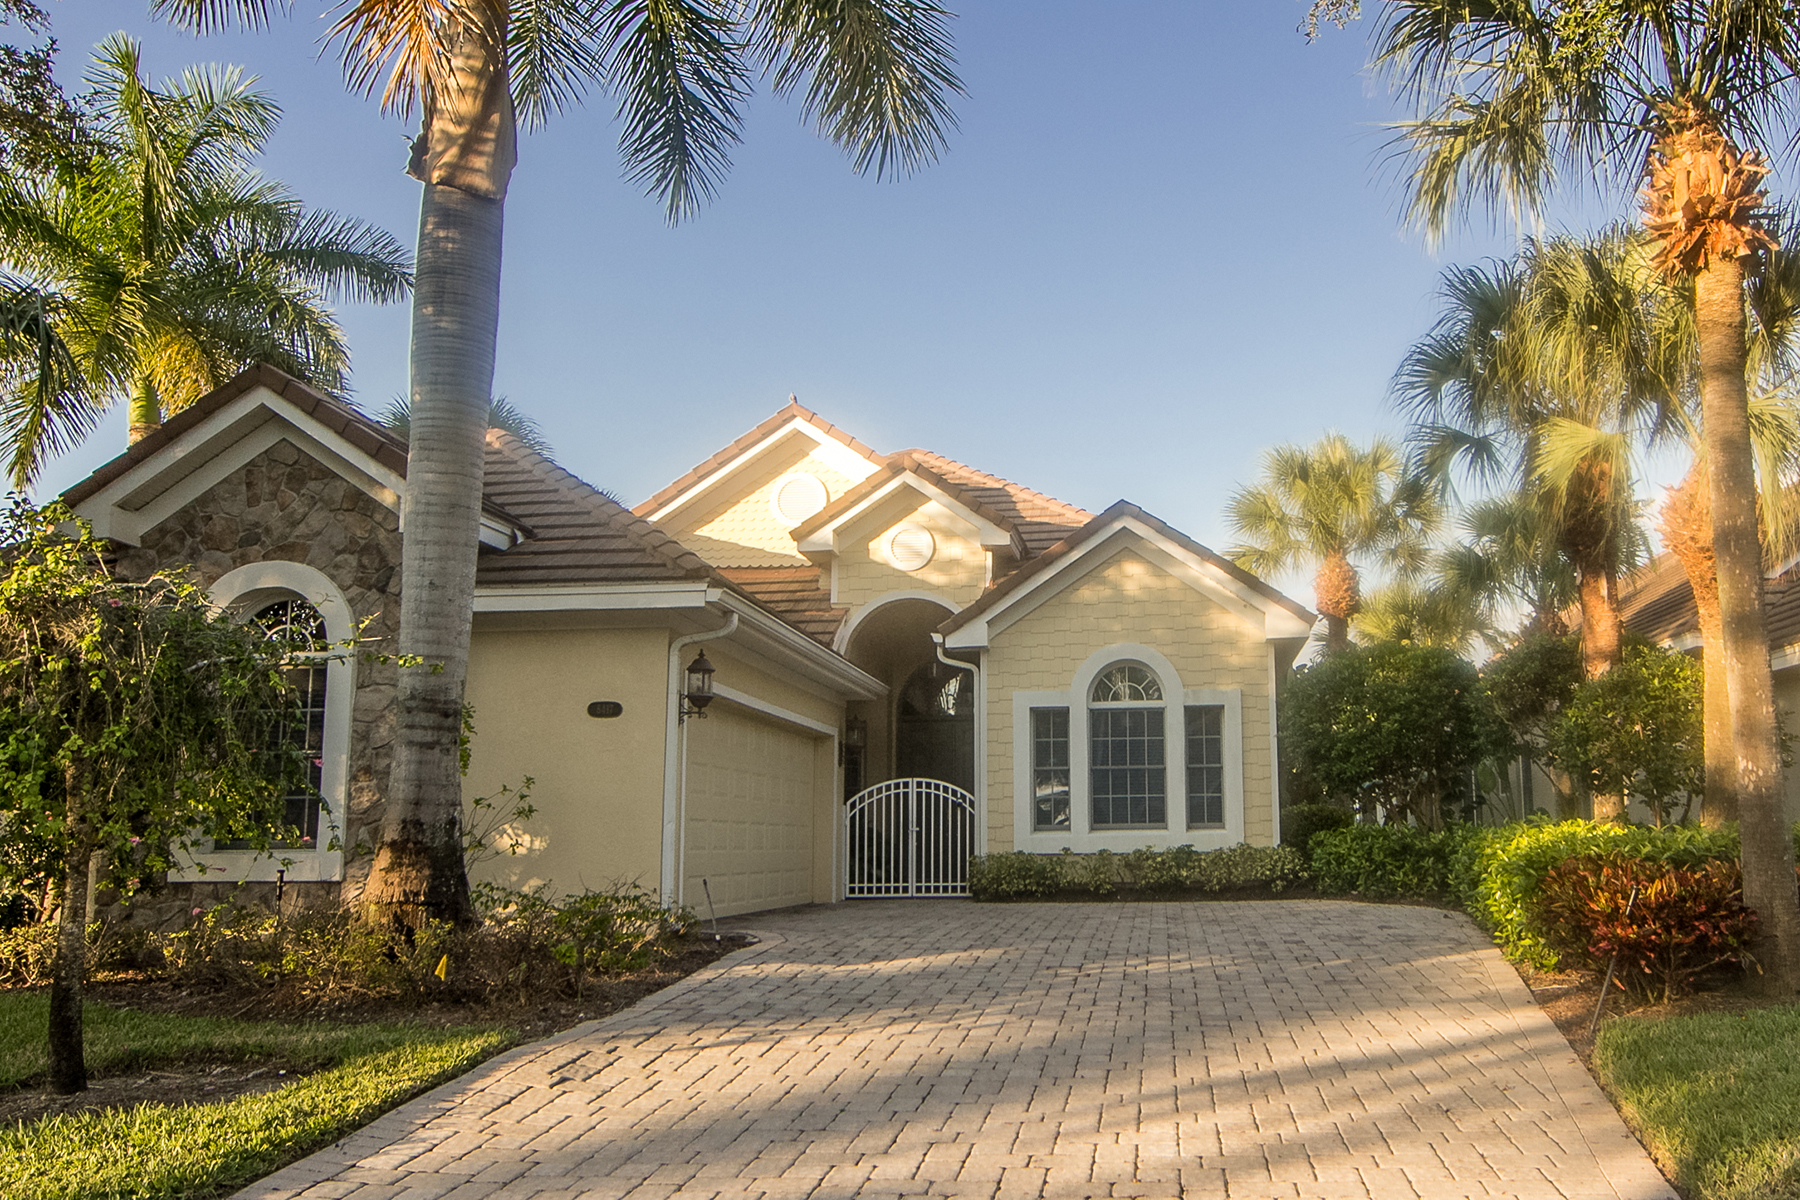 Single Family Home for Sale at FIDDLER'S CREEK - MALLARDS LANDING 8417 Mallards Way Naples, Florida 34114 United States